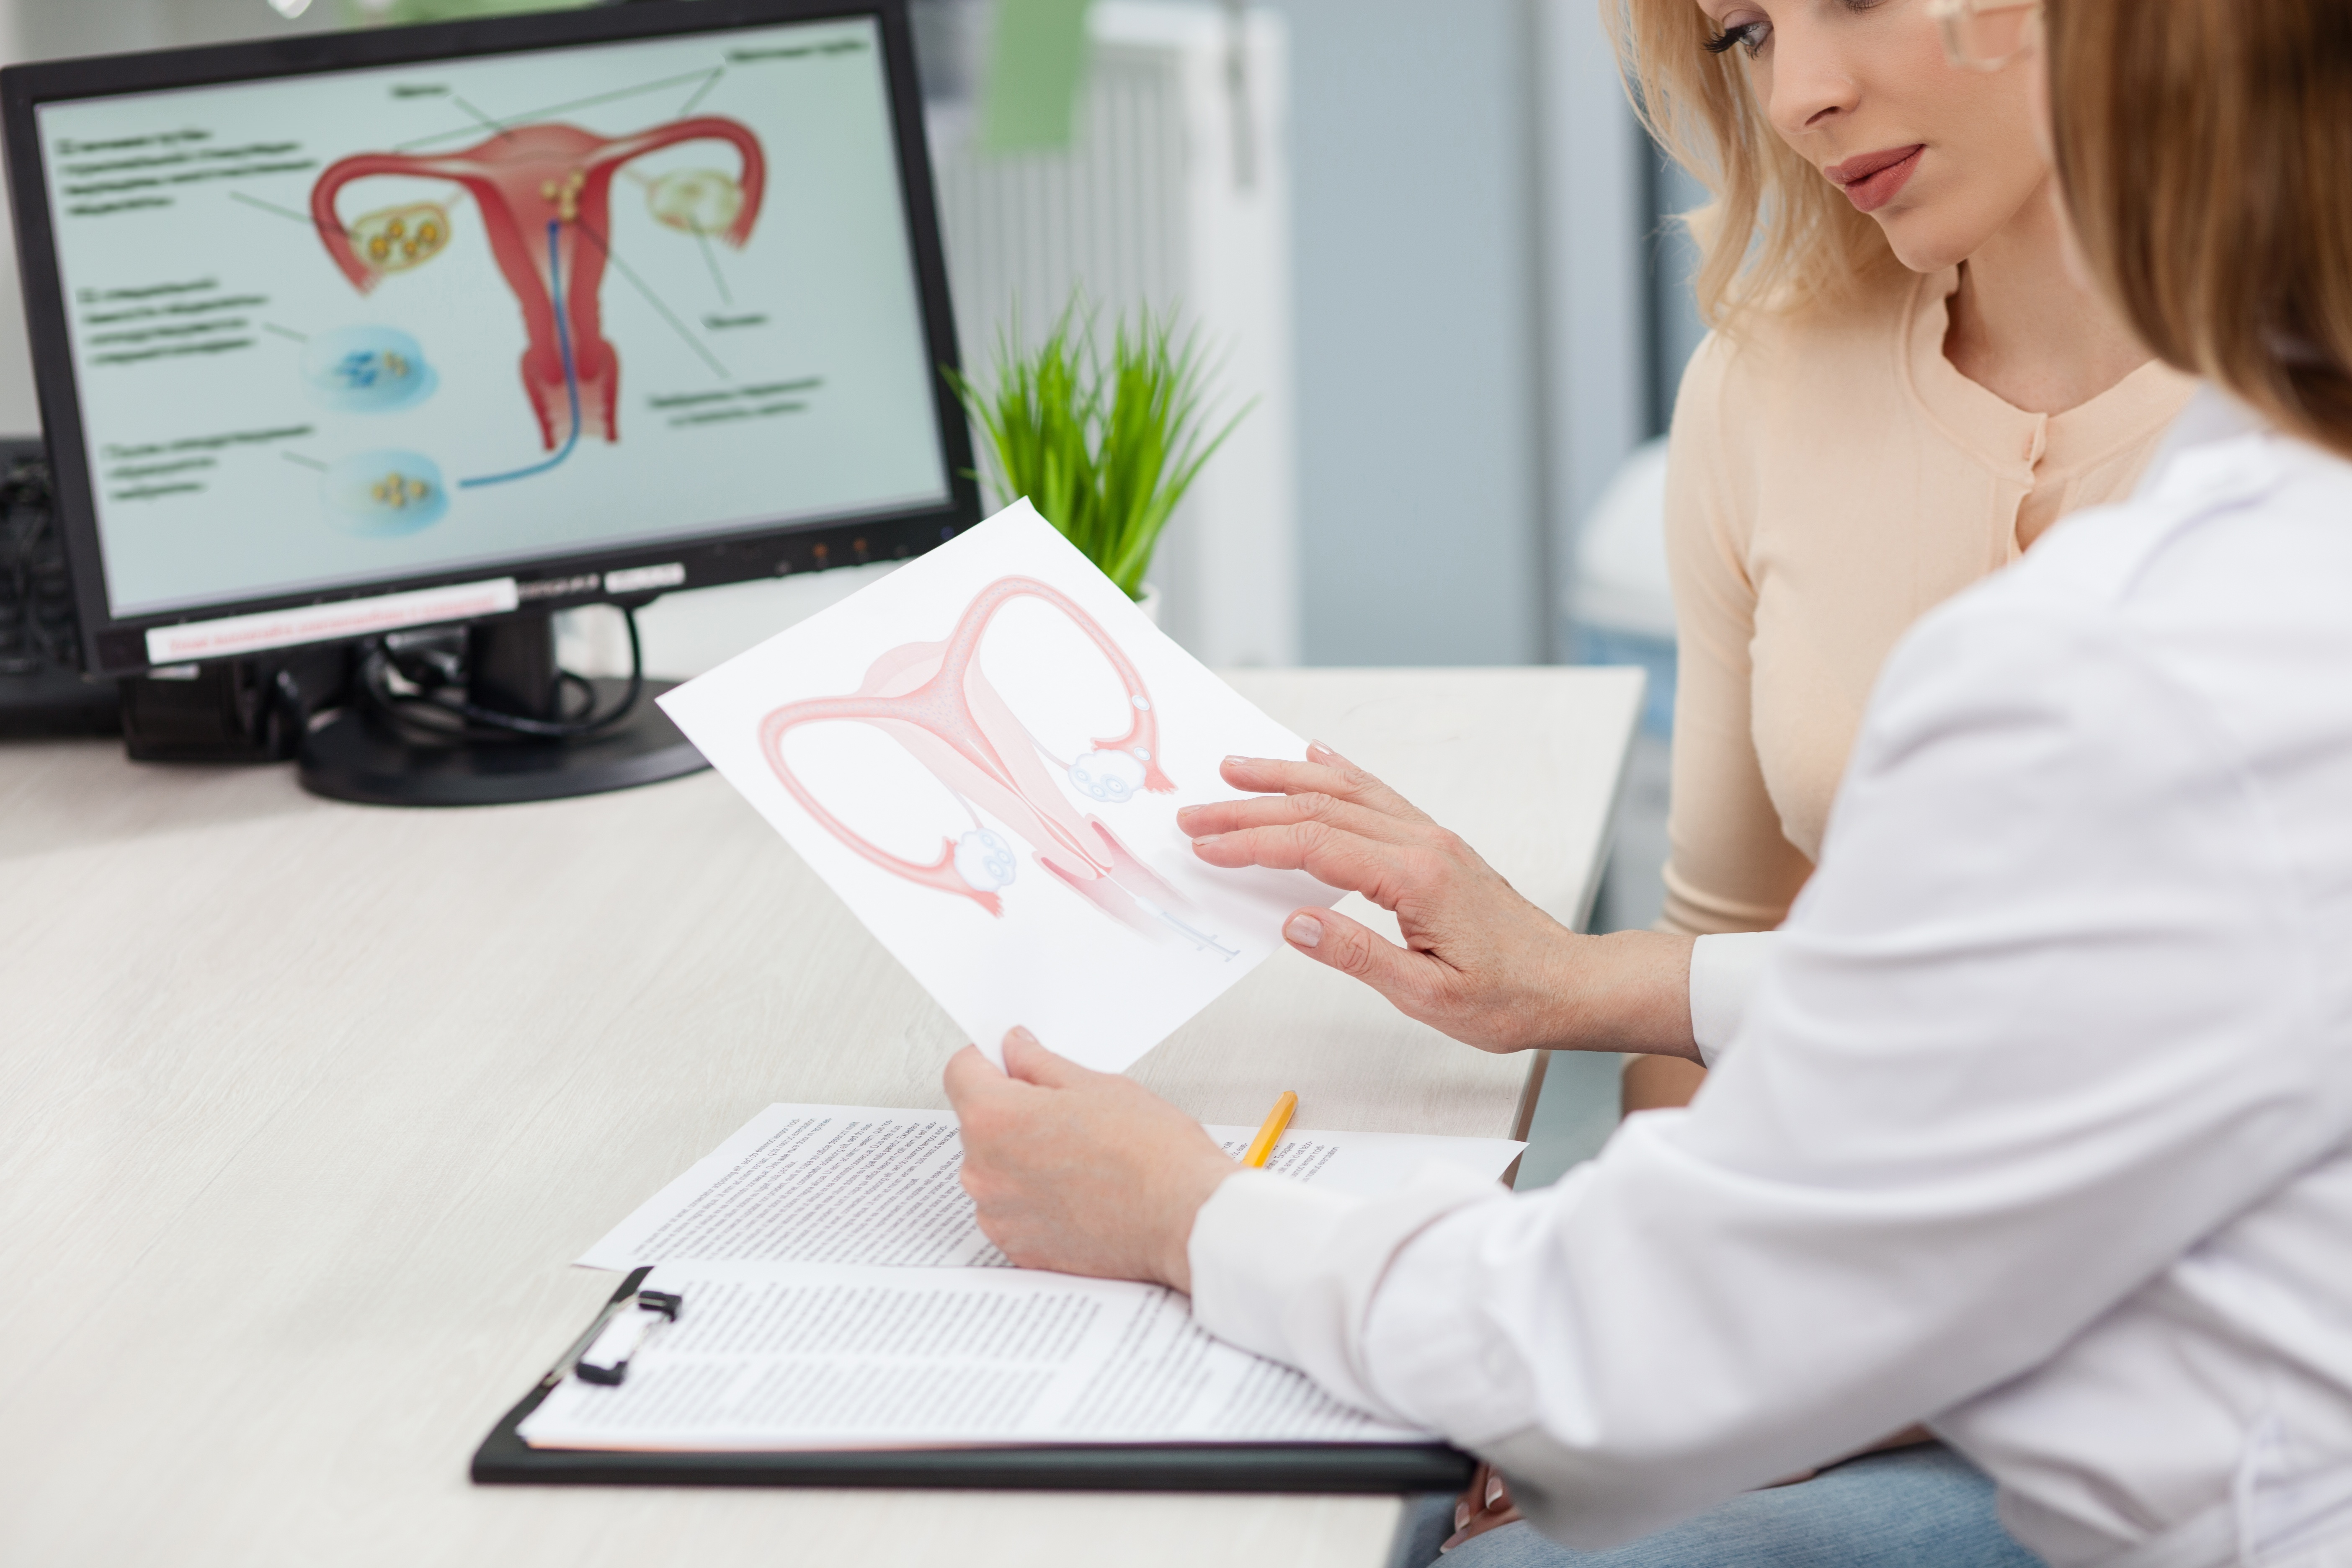 Laparoscopic Hysterectomy: When and How is it Performed?